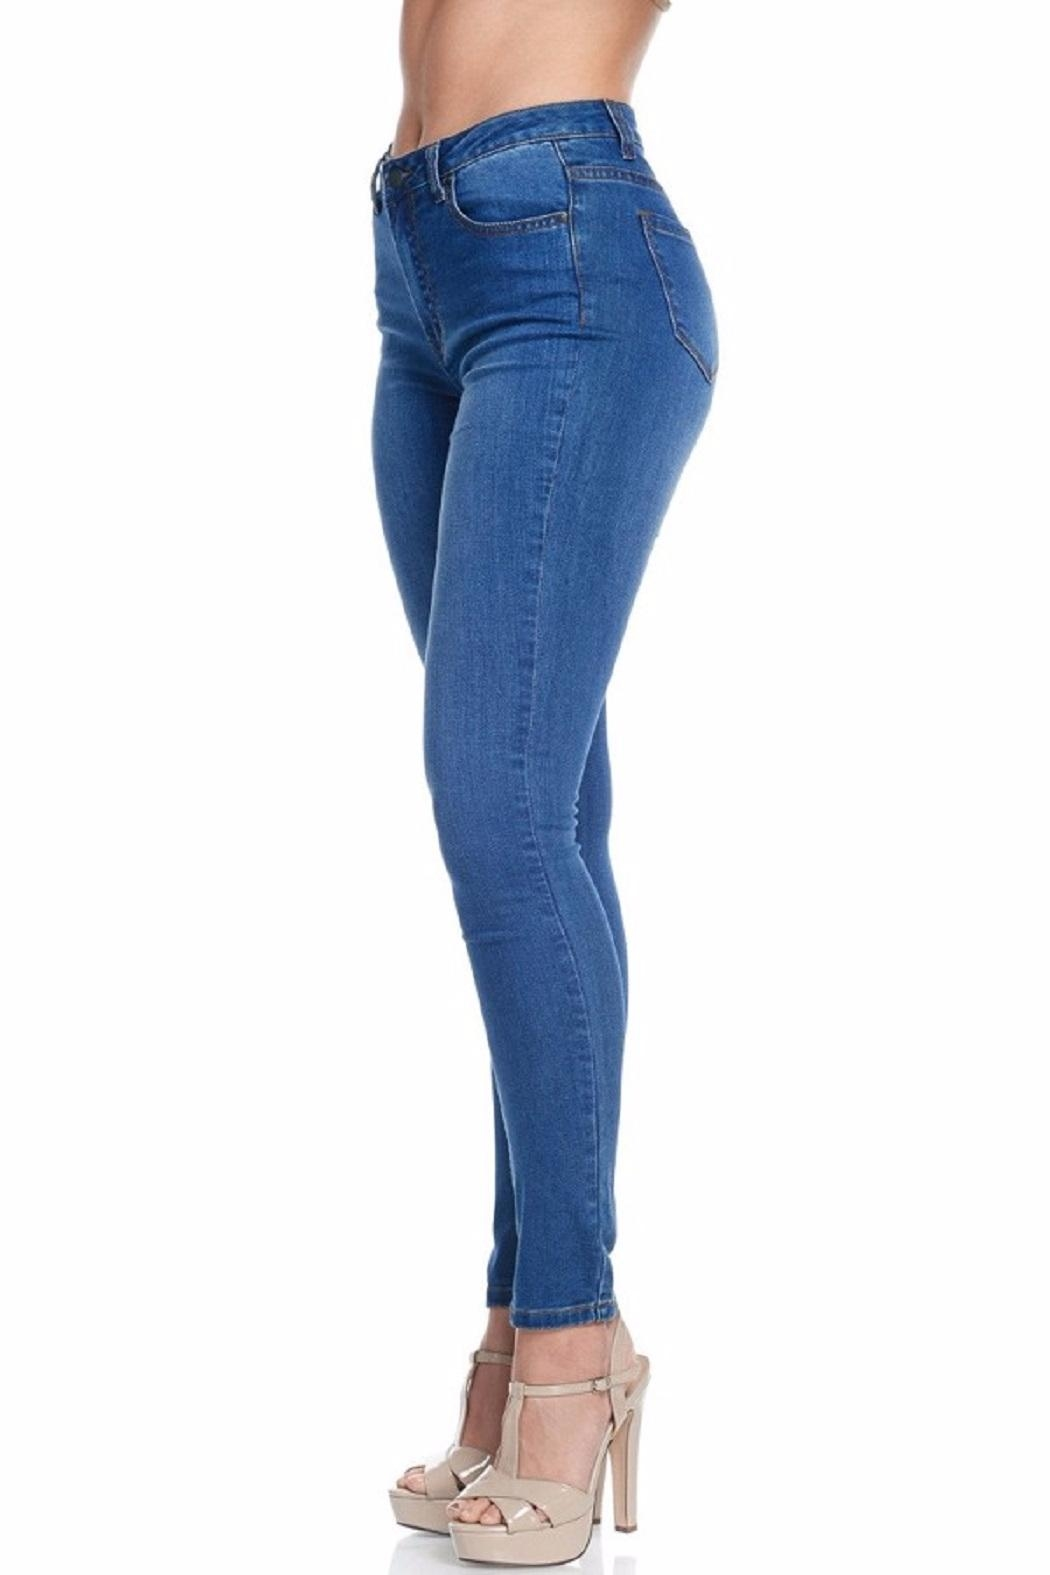 American Bazi Classic Blue Jeans - Side Cropped Image